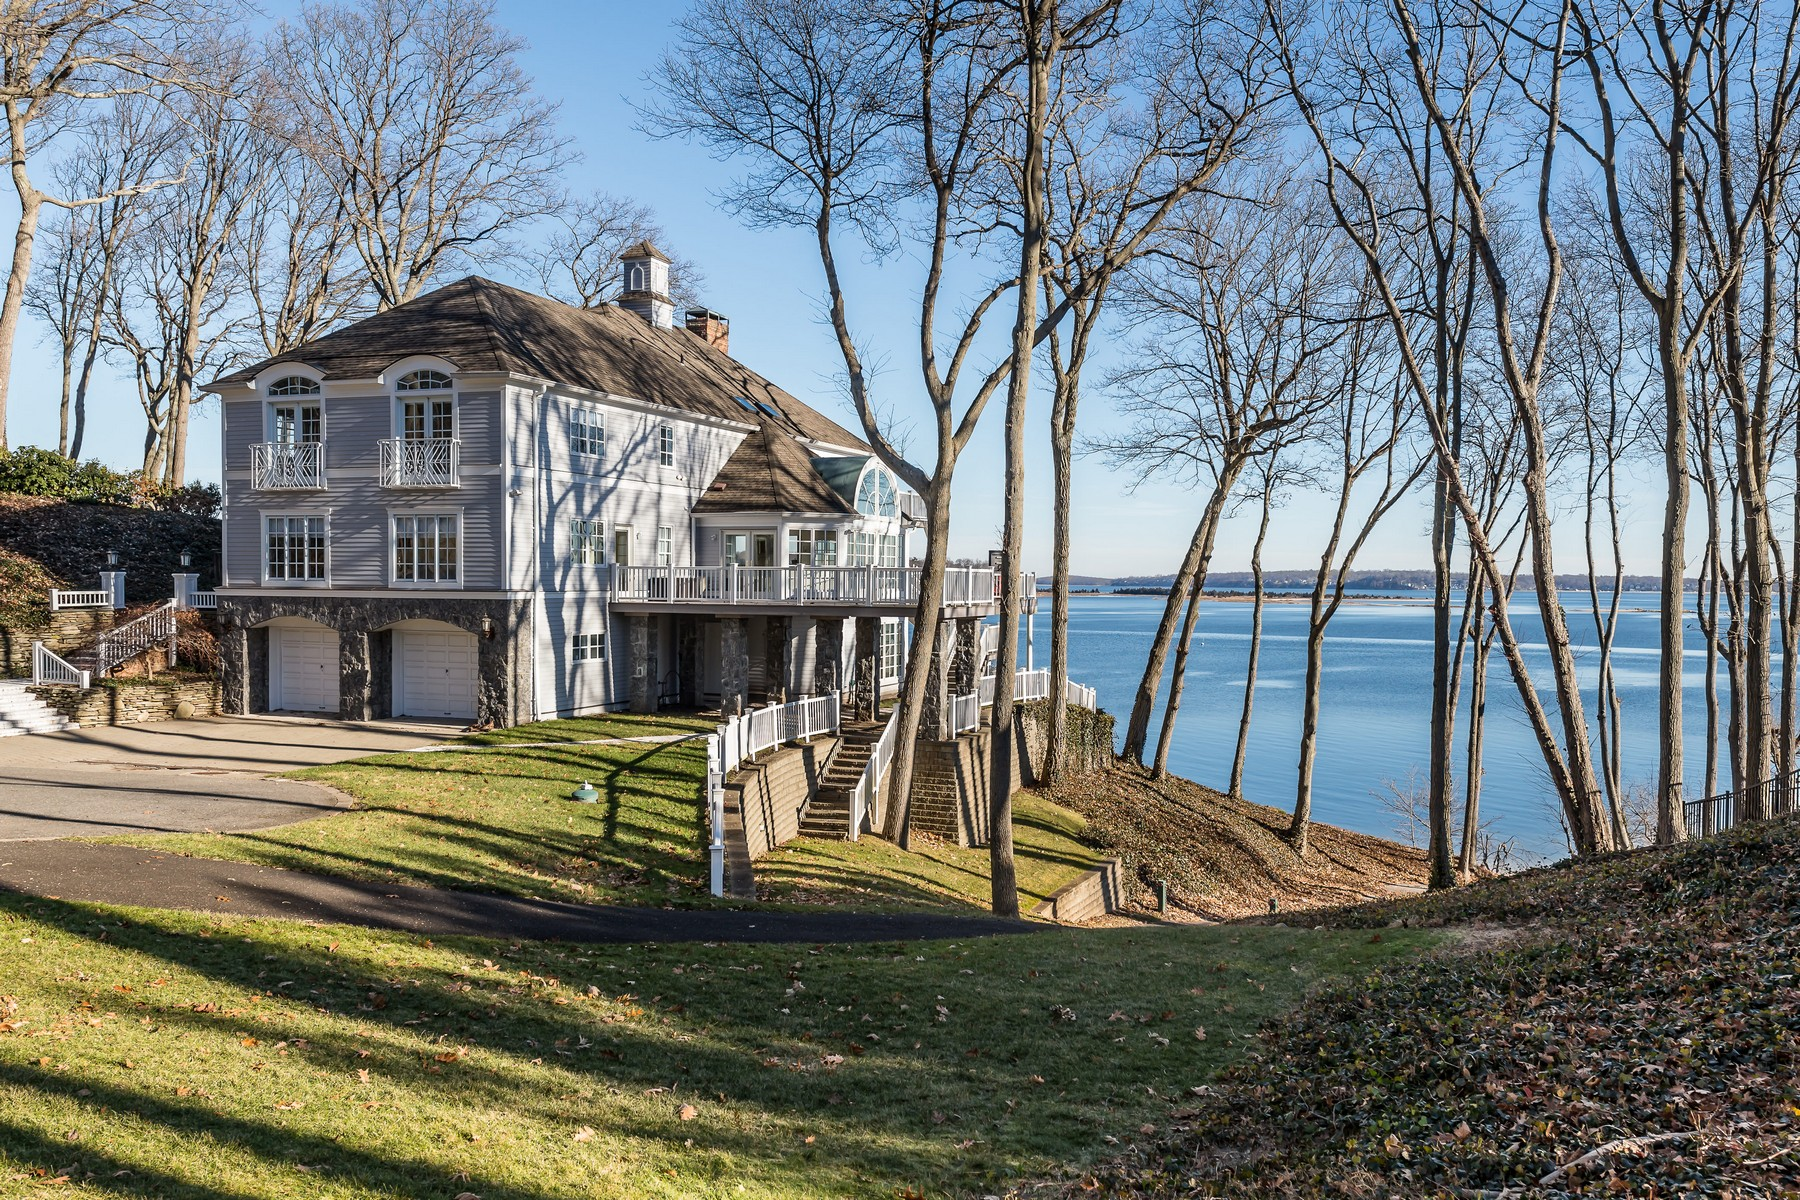 Single Family Homes for Sale at Lloyd Harbor 14 Lloyd Haven Drive Lloyd Harbor, New York 11743 United States